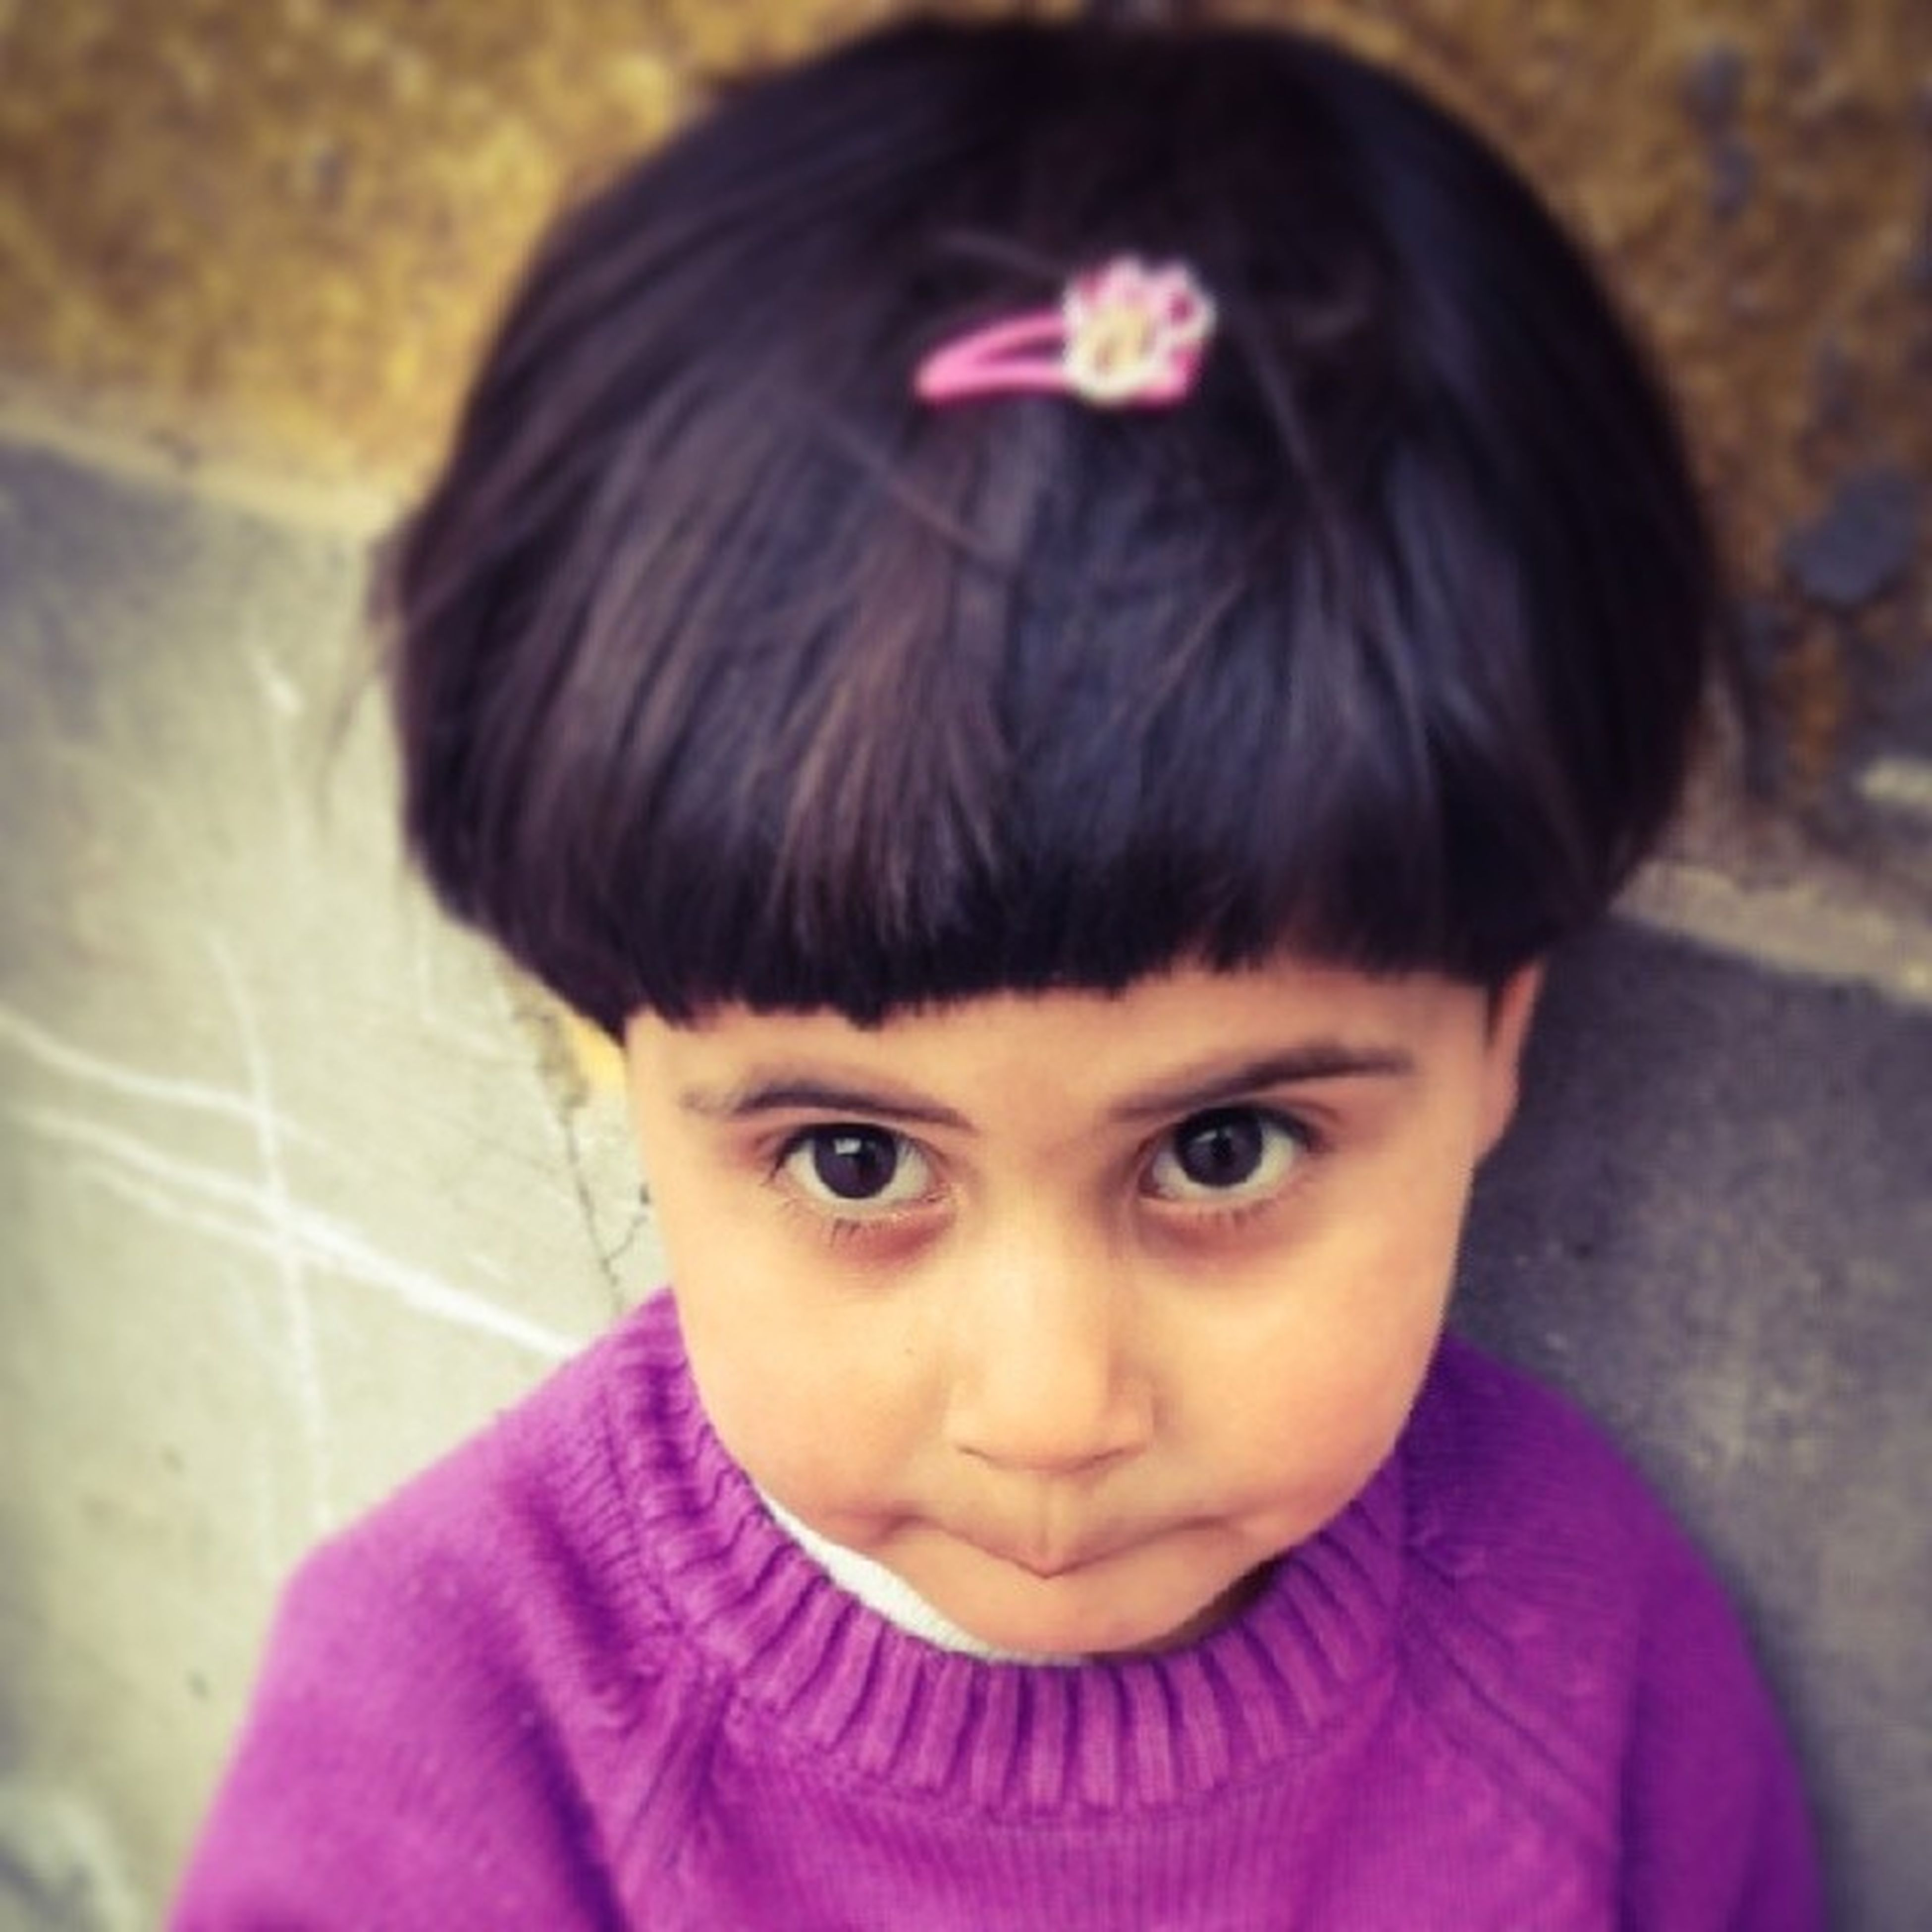 childhood, elementary age, cute, innocence, portrait, looking at camera, girls, headshot, person, boys, indoors, lifestyles, leisure activity, close-up, front view, focus on foreground, casual clothing, high angle view